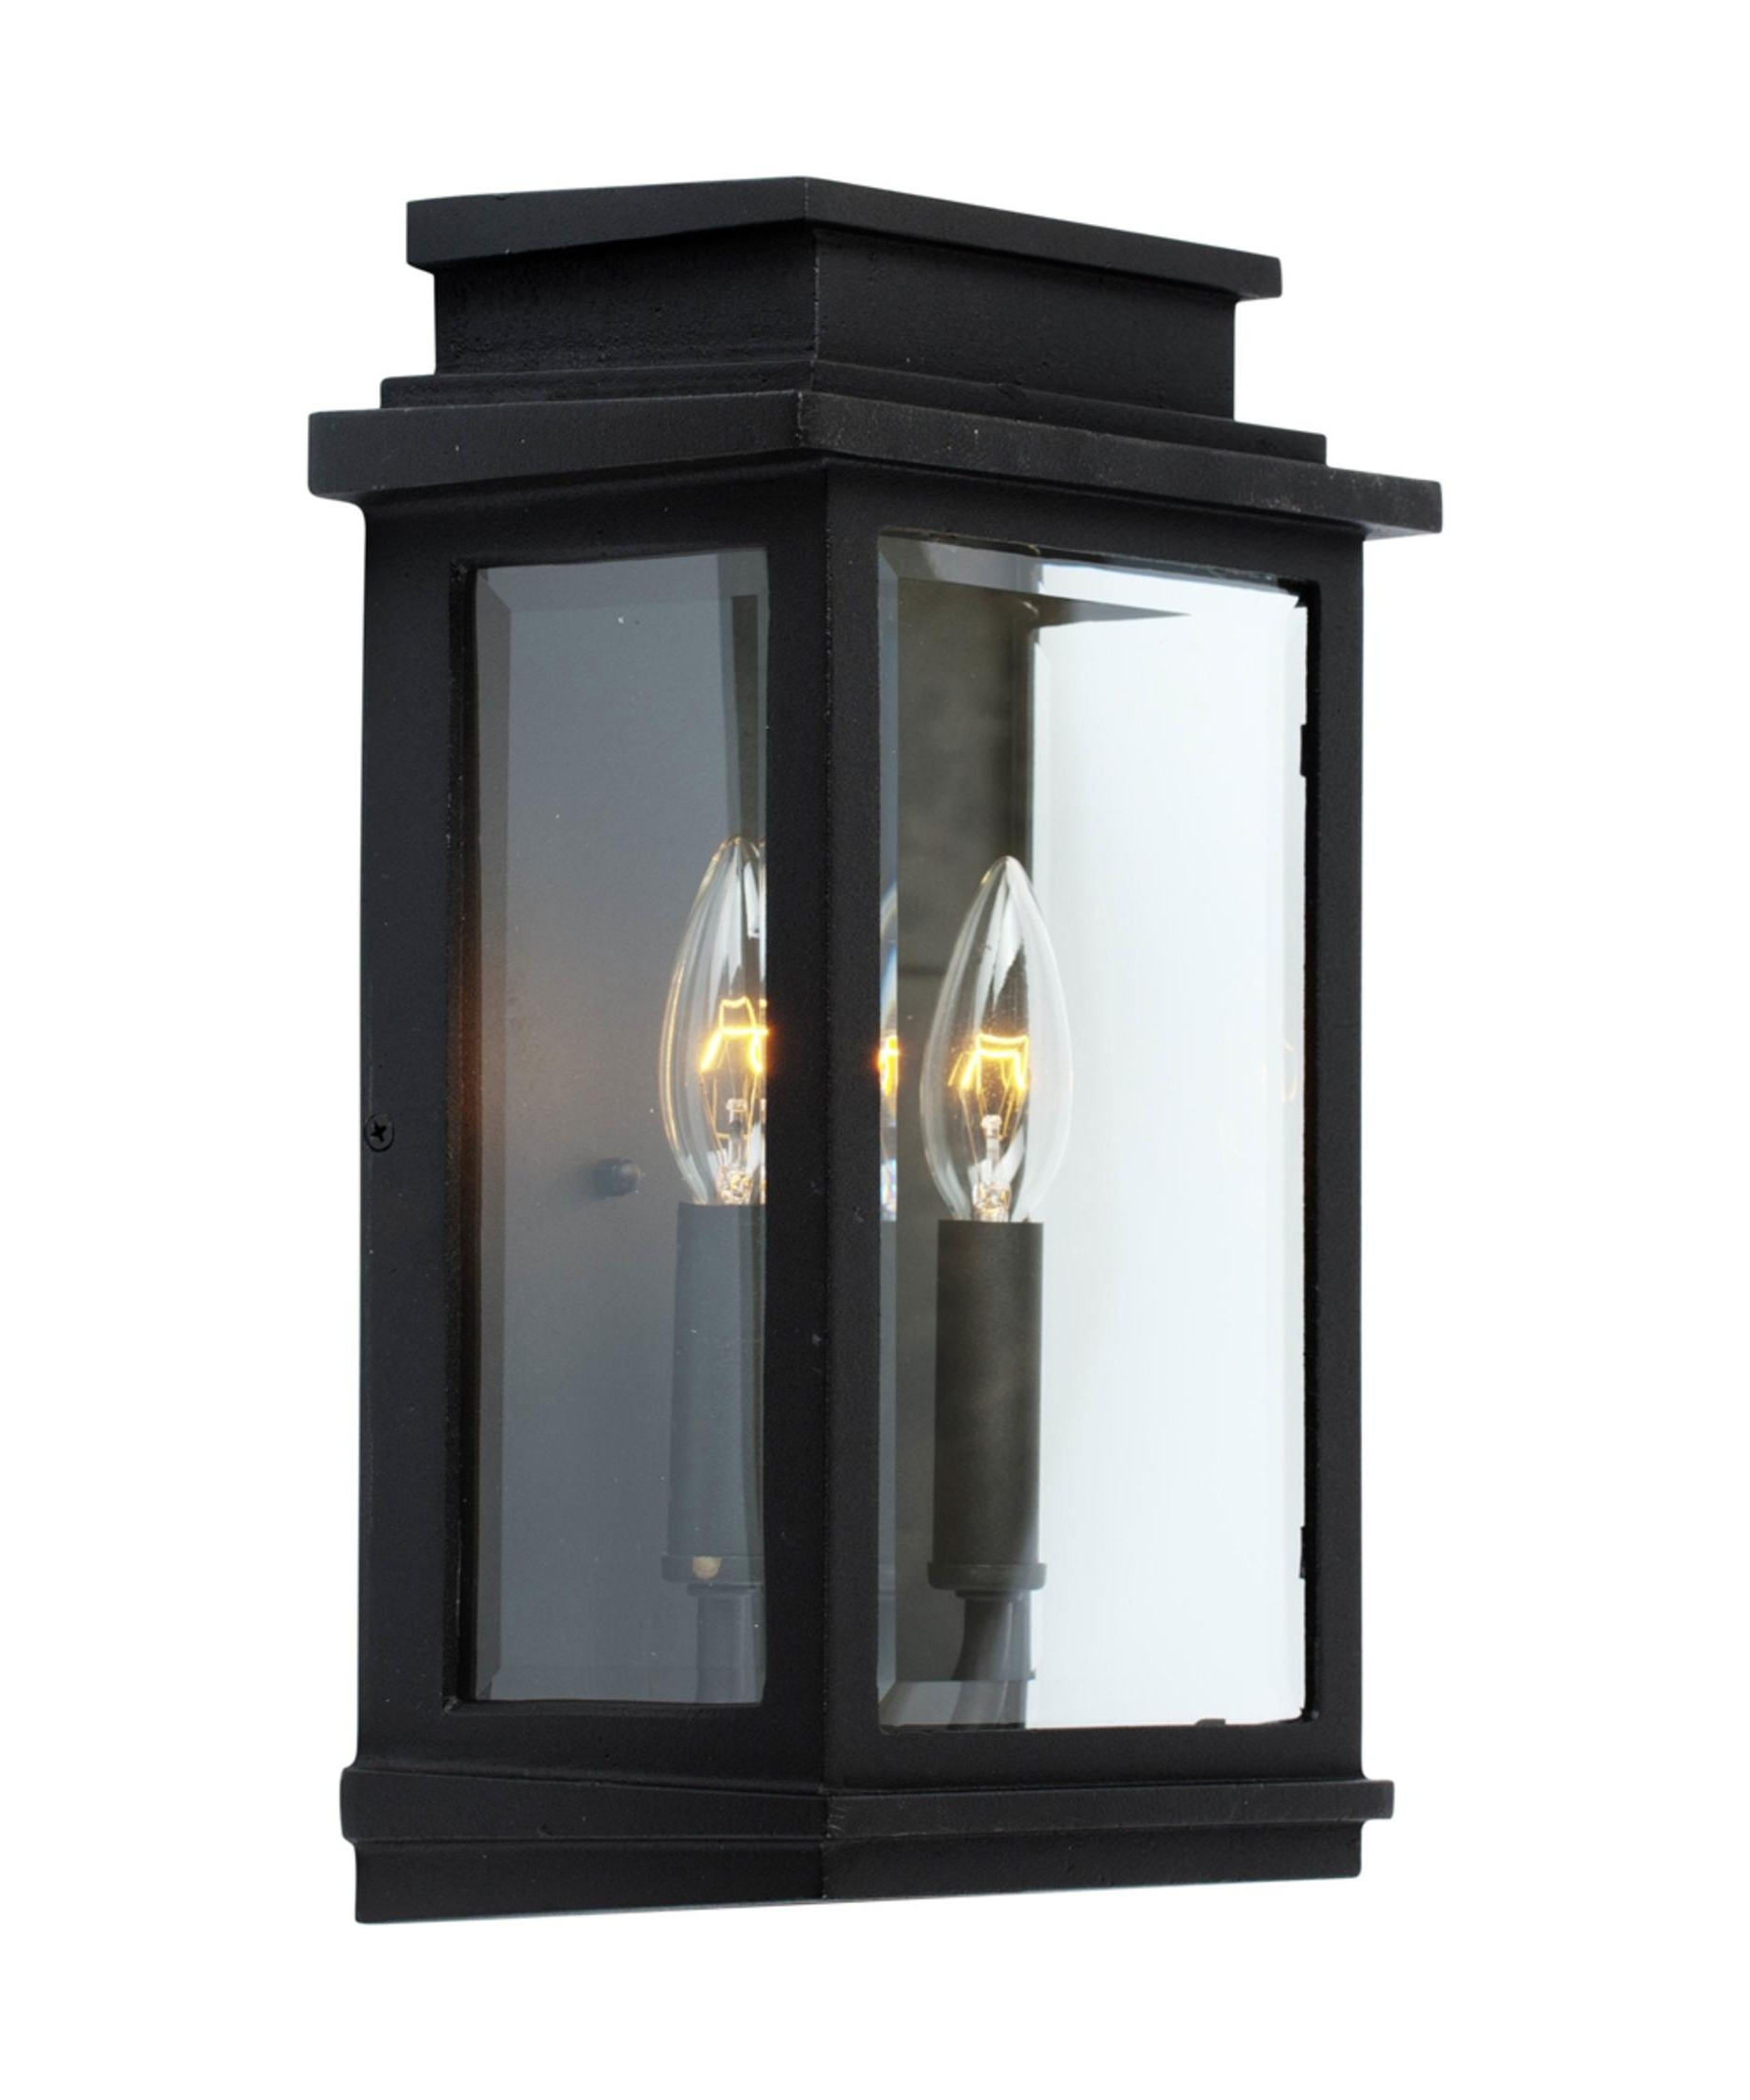 Latest Outdoor Wall Lights In Black Inside Artcraft Ac8391 Fremont 9 Inch Wide 2 Light Outdoor Wall Light (View 7 of 20)